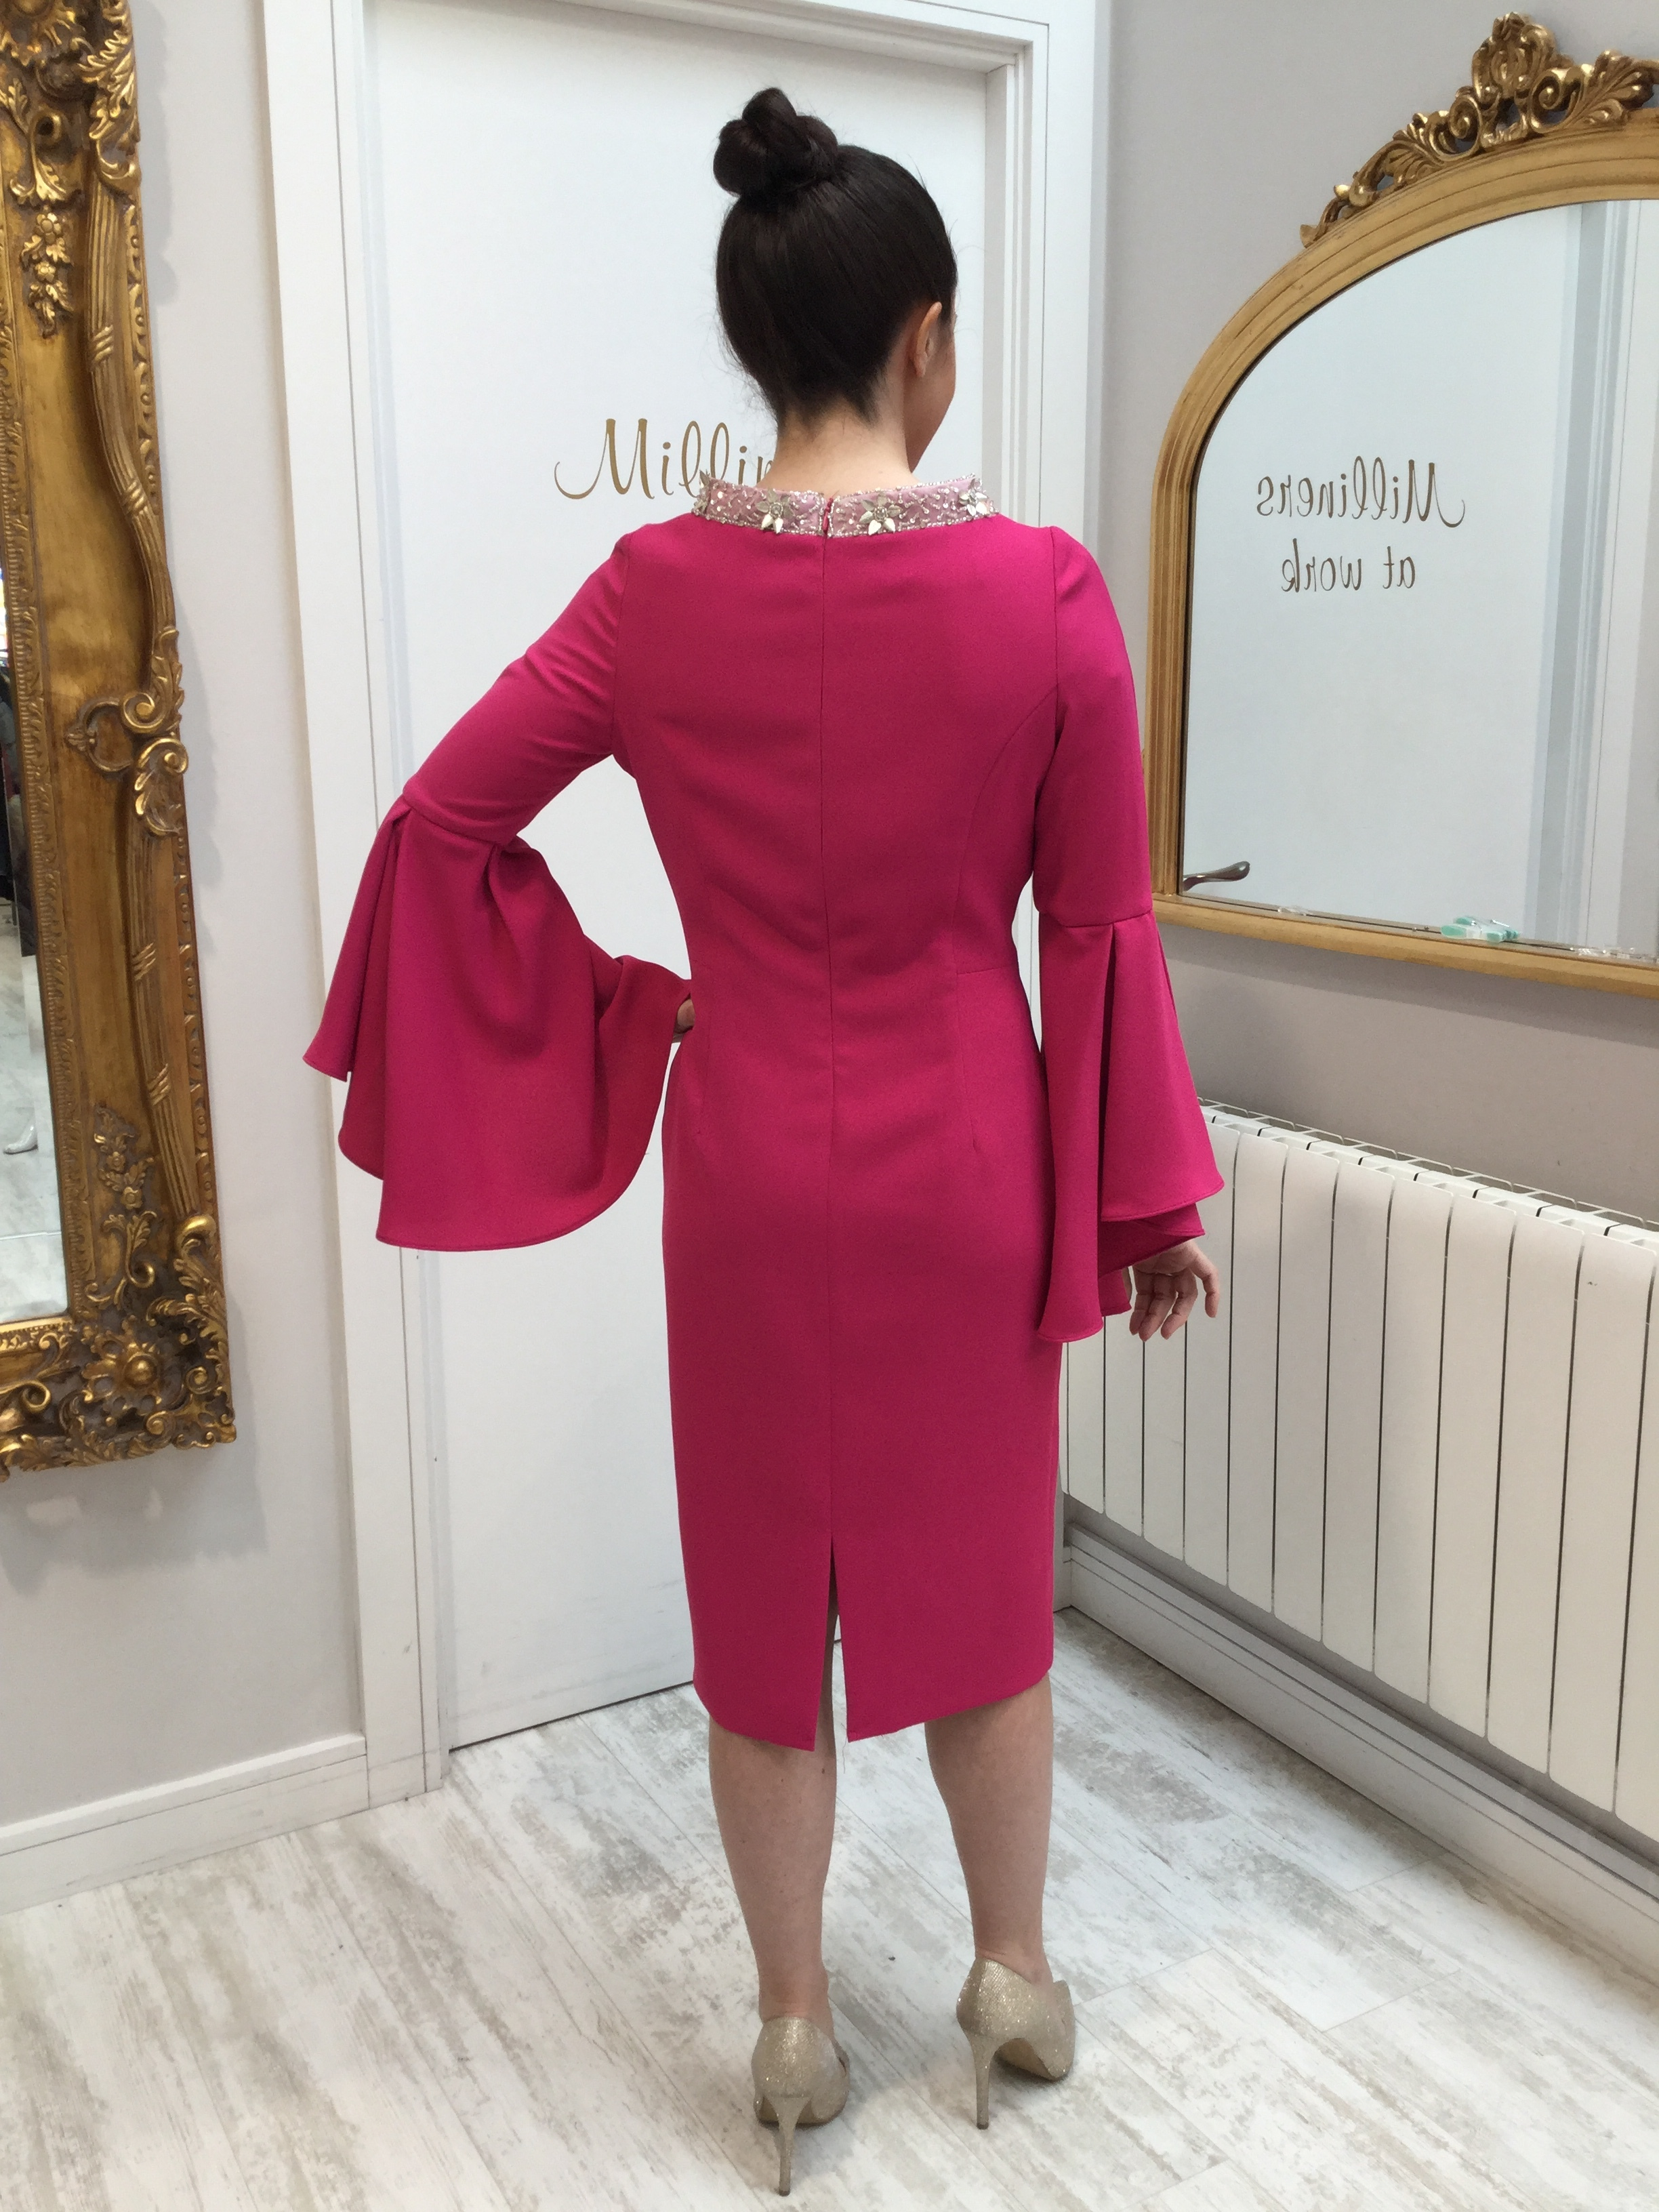 Pink Dress with Fluted Sleeves and Embellished Neckline